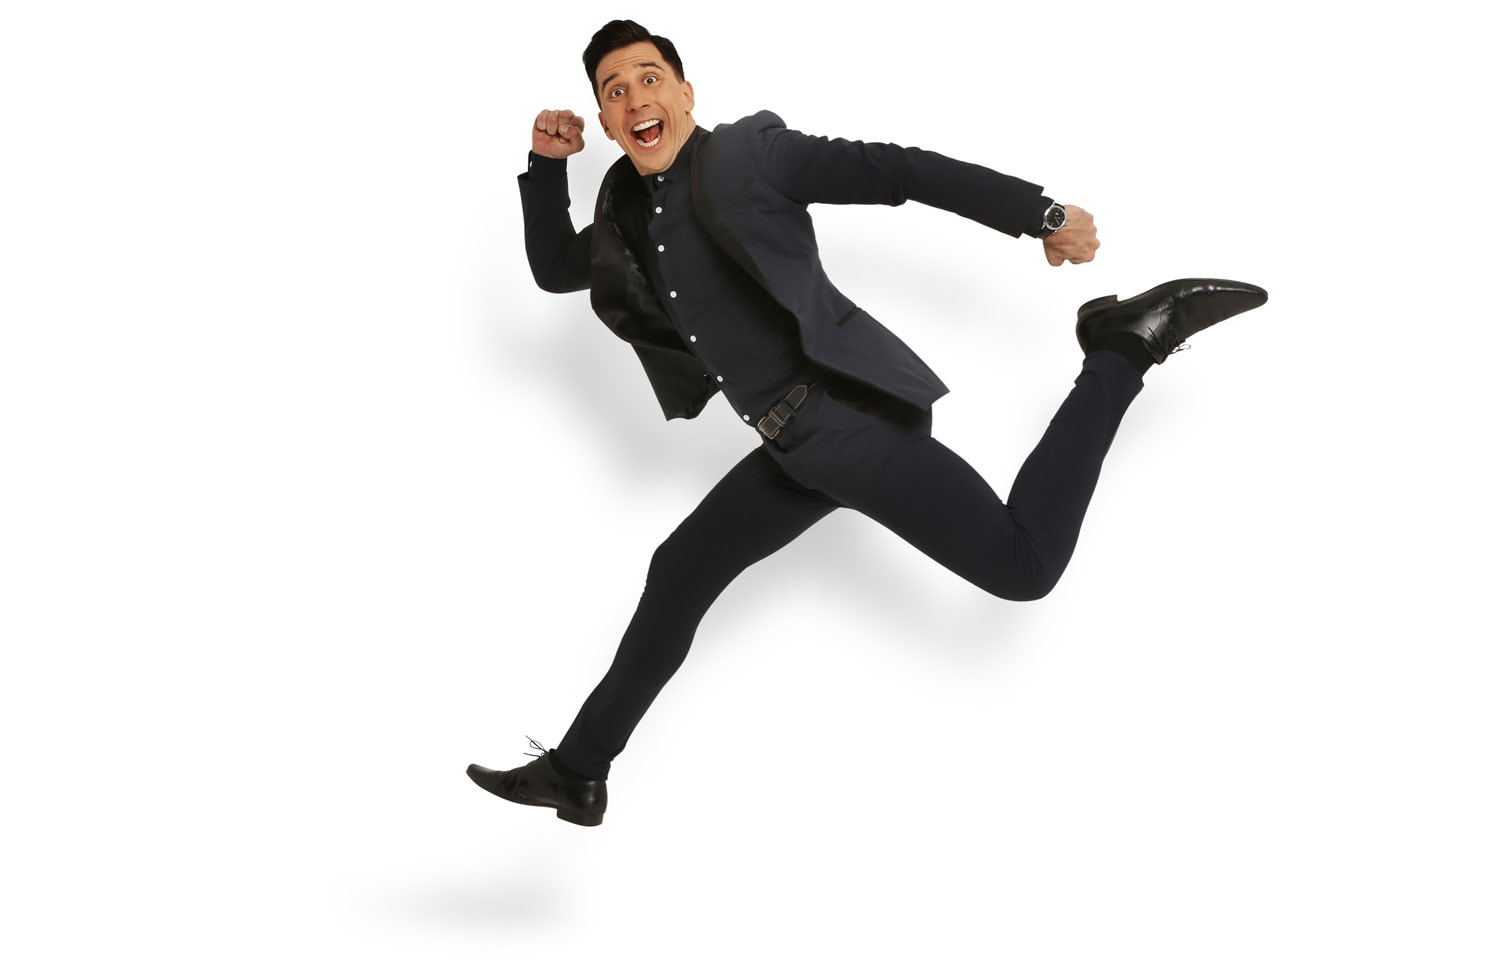 RUSSELL KANE'S THE FAST AND THE CURIOUS 2019 TOUR FURTHER EXTENDED